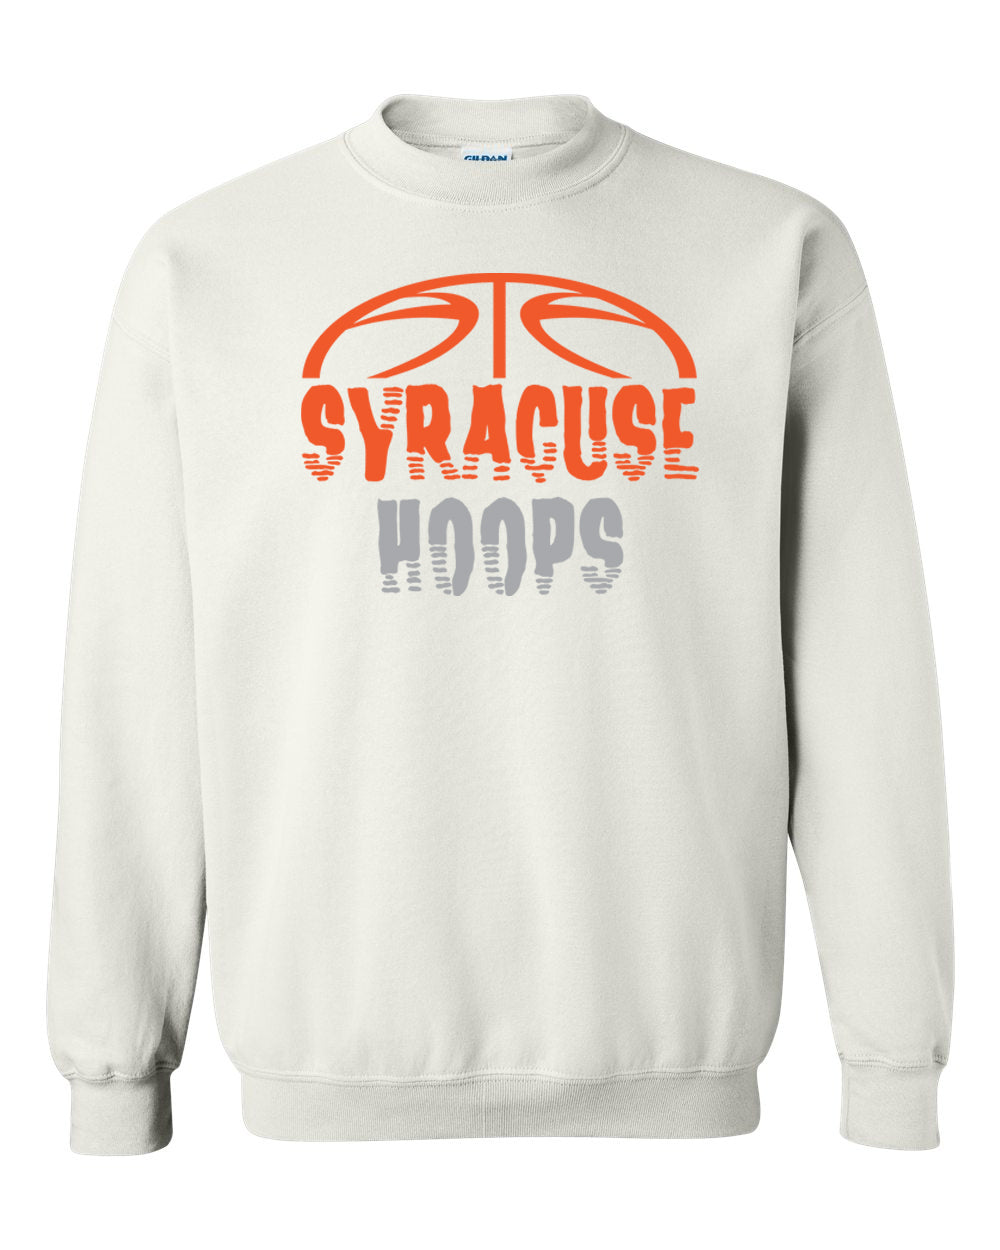 Hoops White Crewneck Sweatshirt